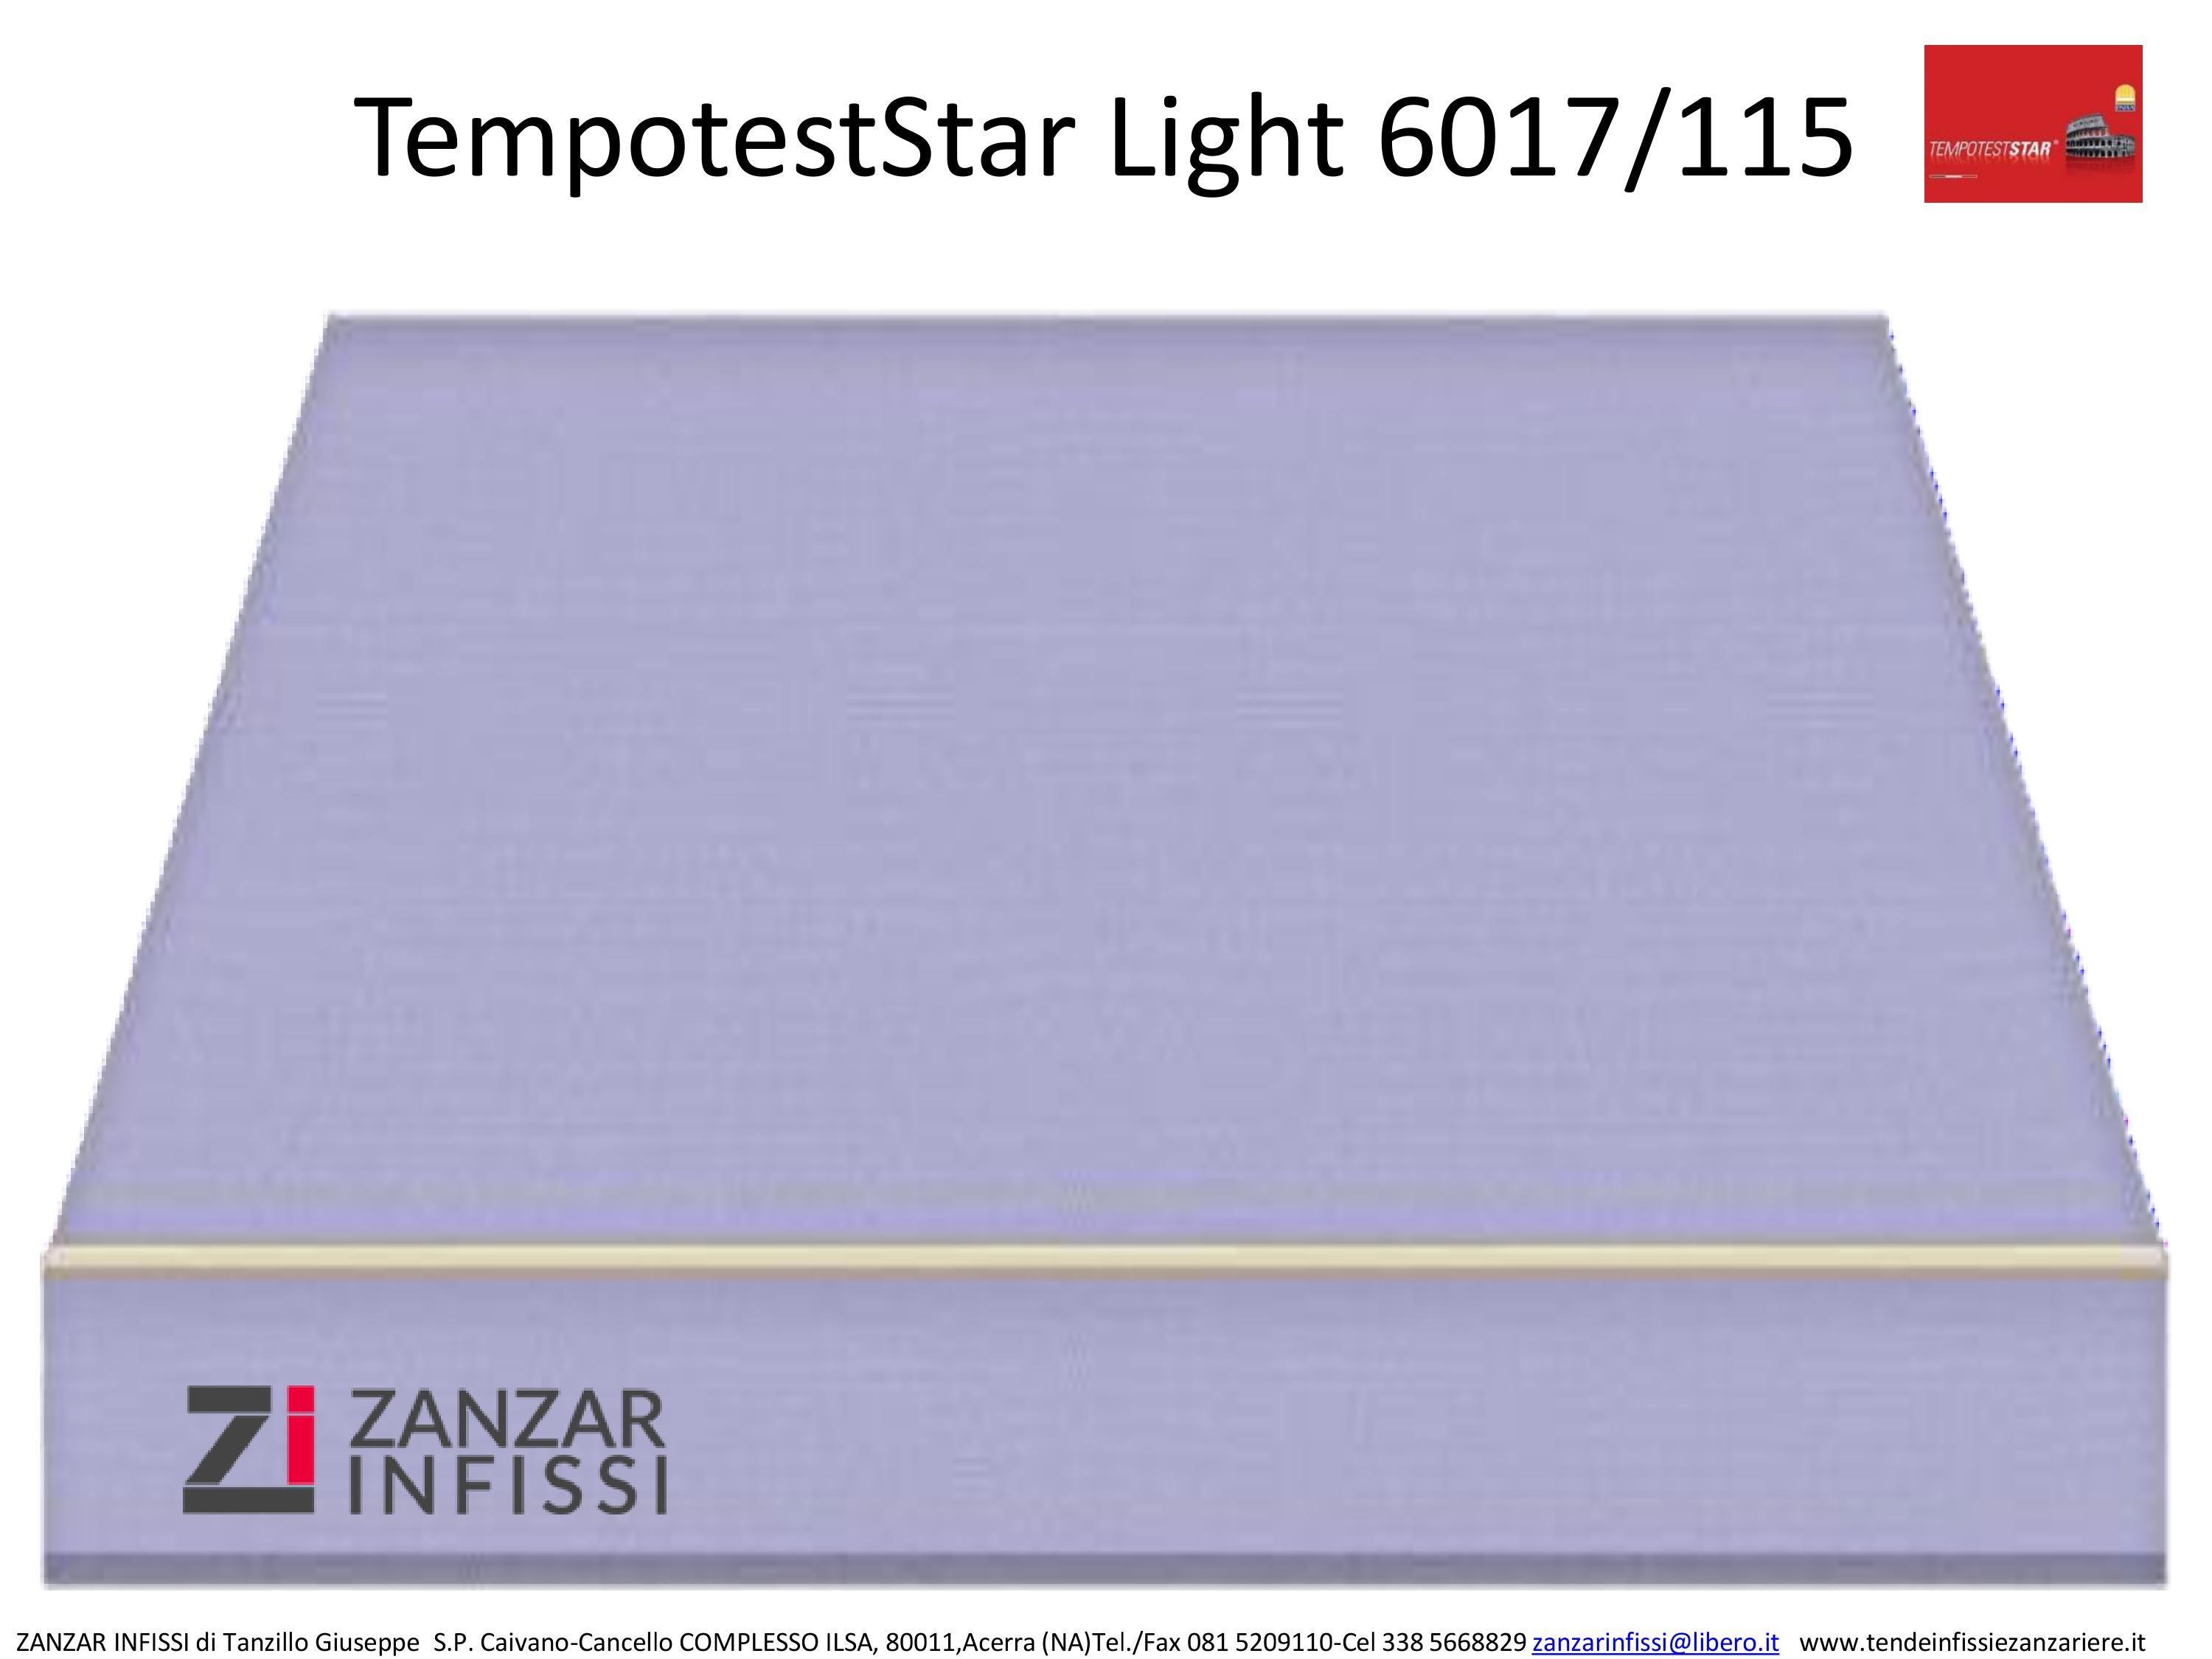 Tempotest star light 6017/115